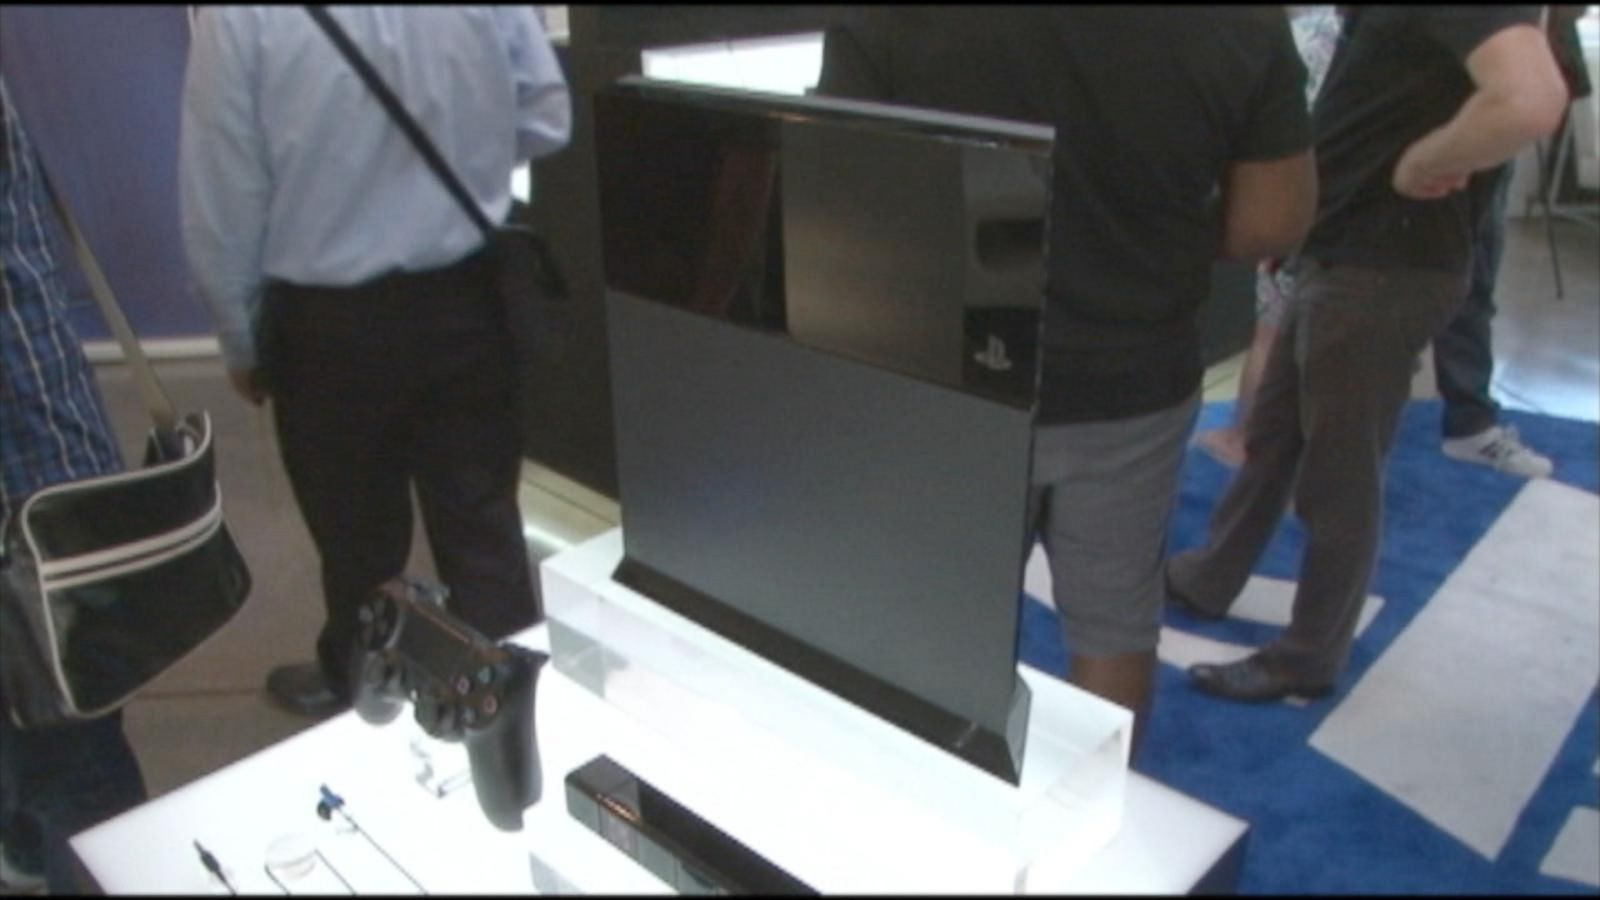 VIDEO: Sony Set to Launch New PlayStation